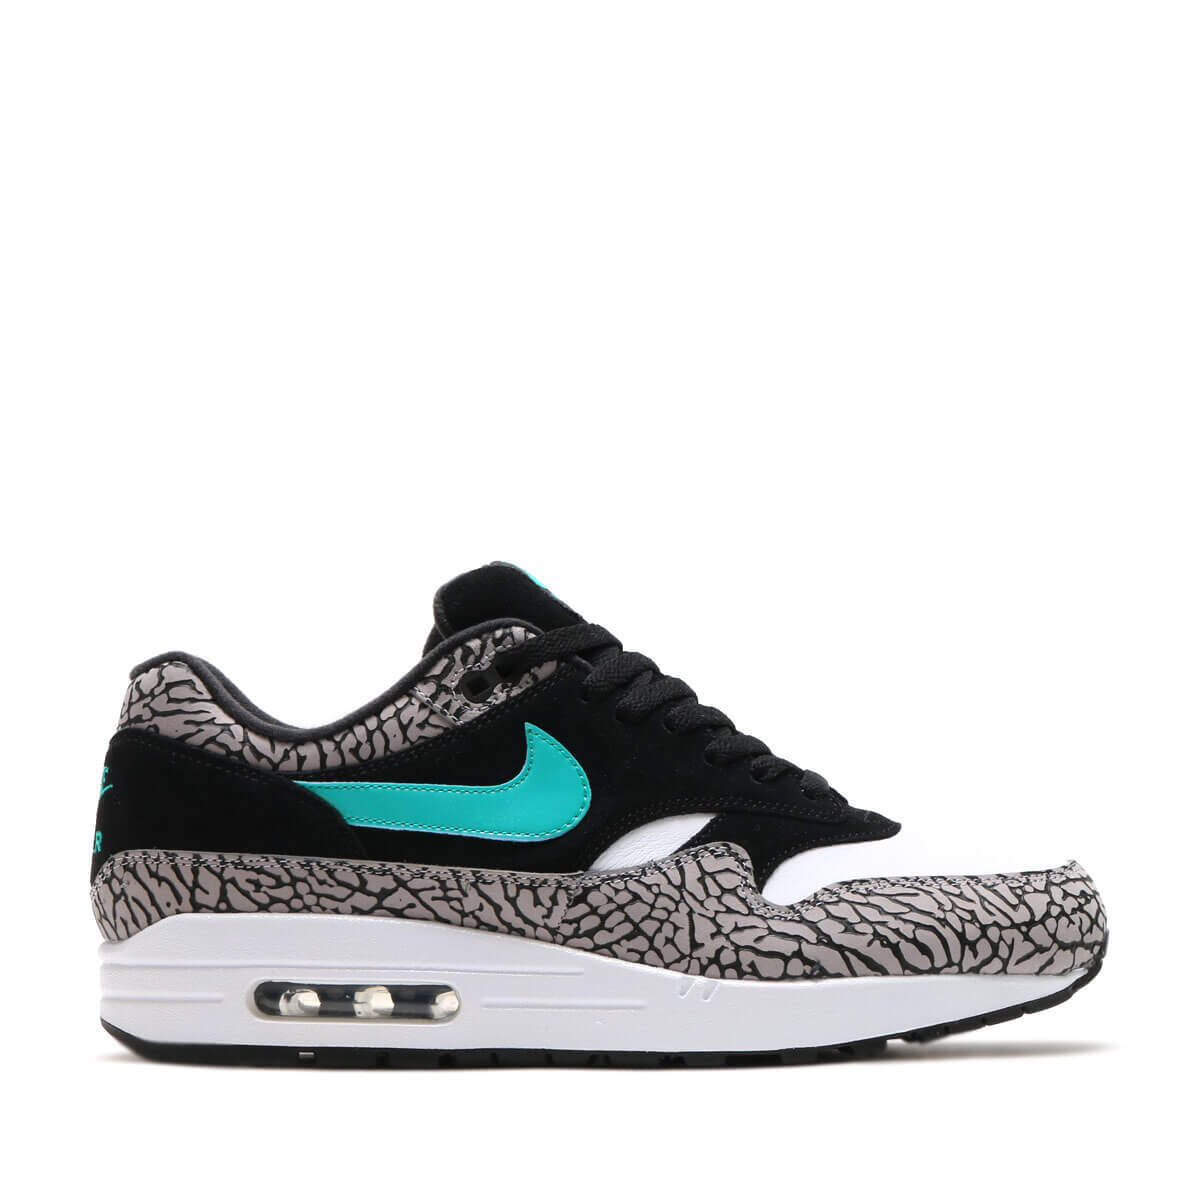 The Top 40 Sneakers of 2017 | #11 Atmos x Nike Air Max 1